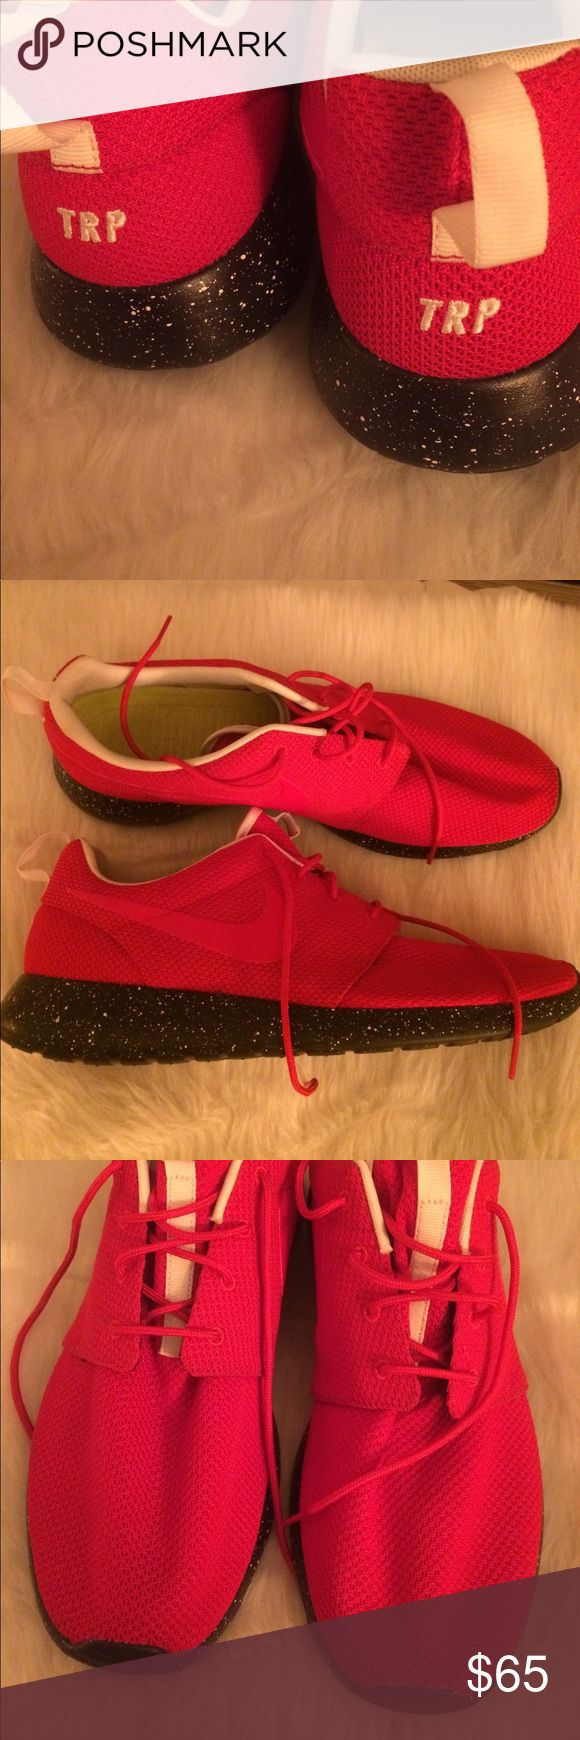 NIKE iD WOMENS ROSHE SHOES RED CUSTOM SZ 15 Brand new without box Nike Shoes Sneakers